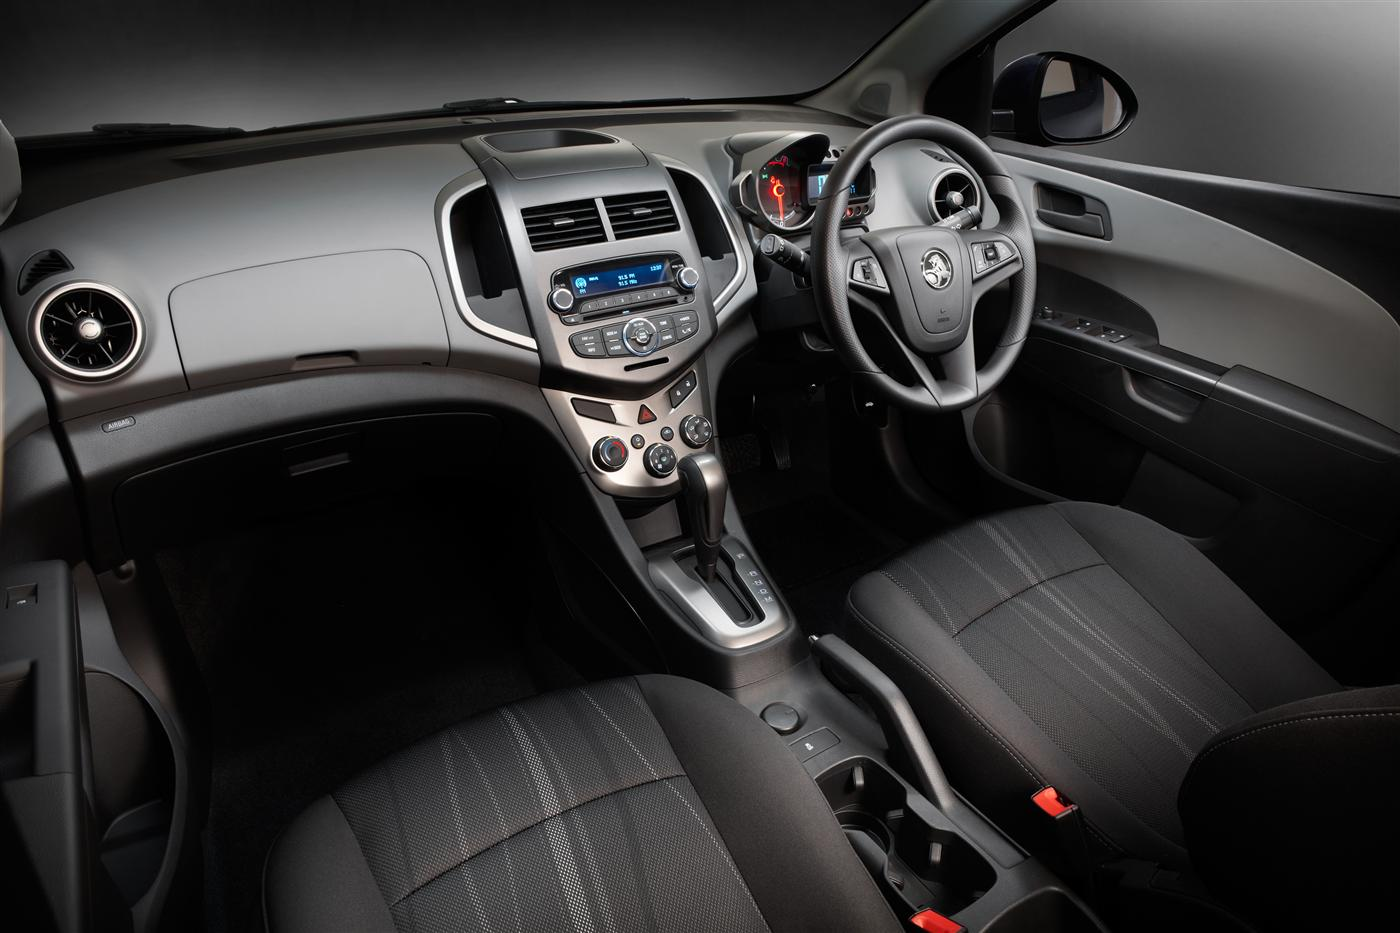 2012_holden_barina_review_15